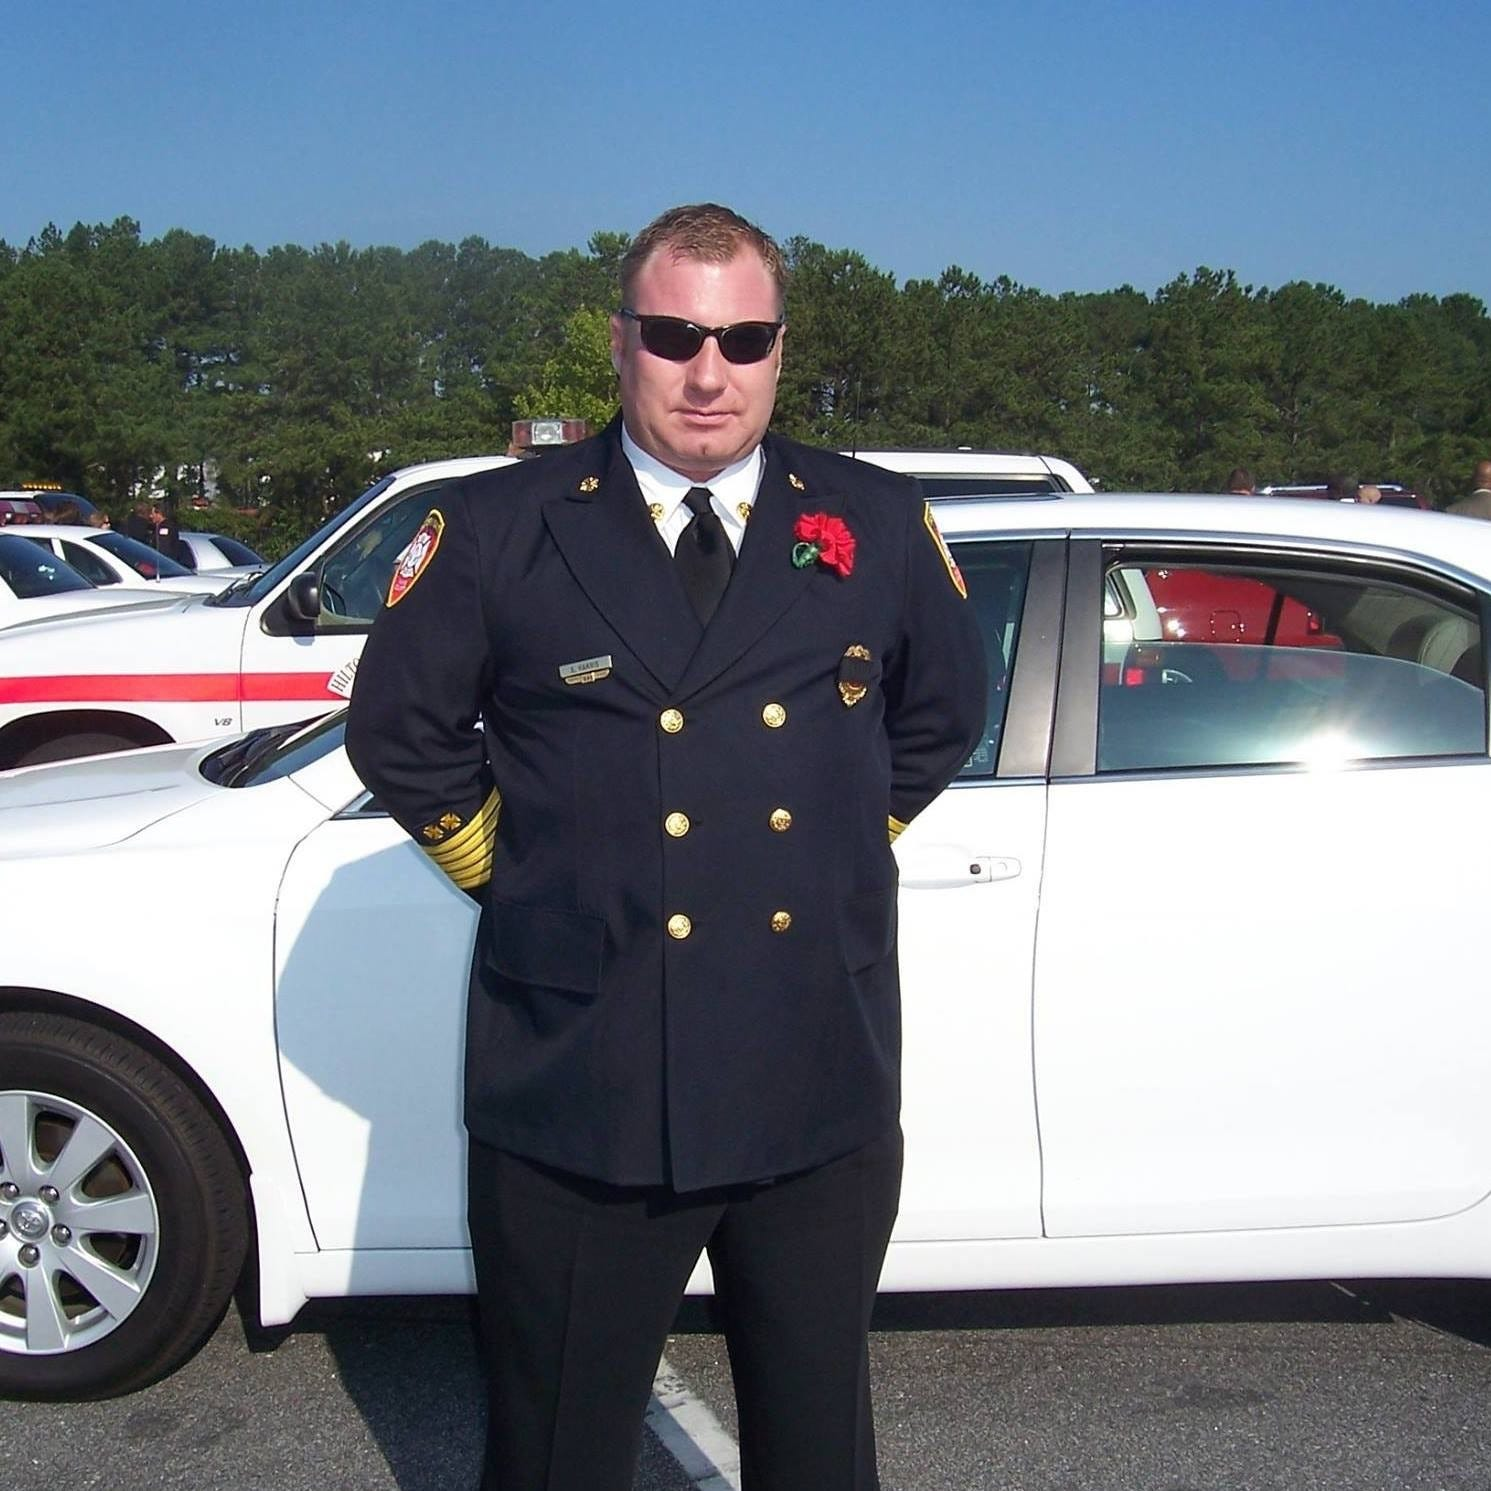 Black Mountain hires new fire chief